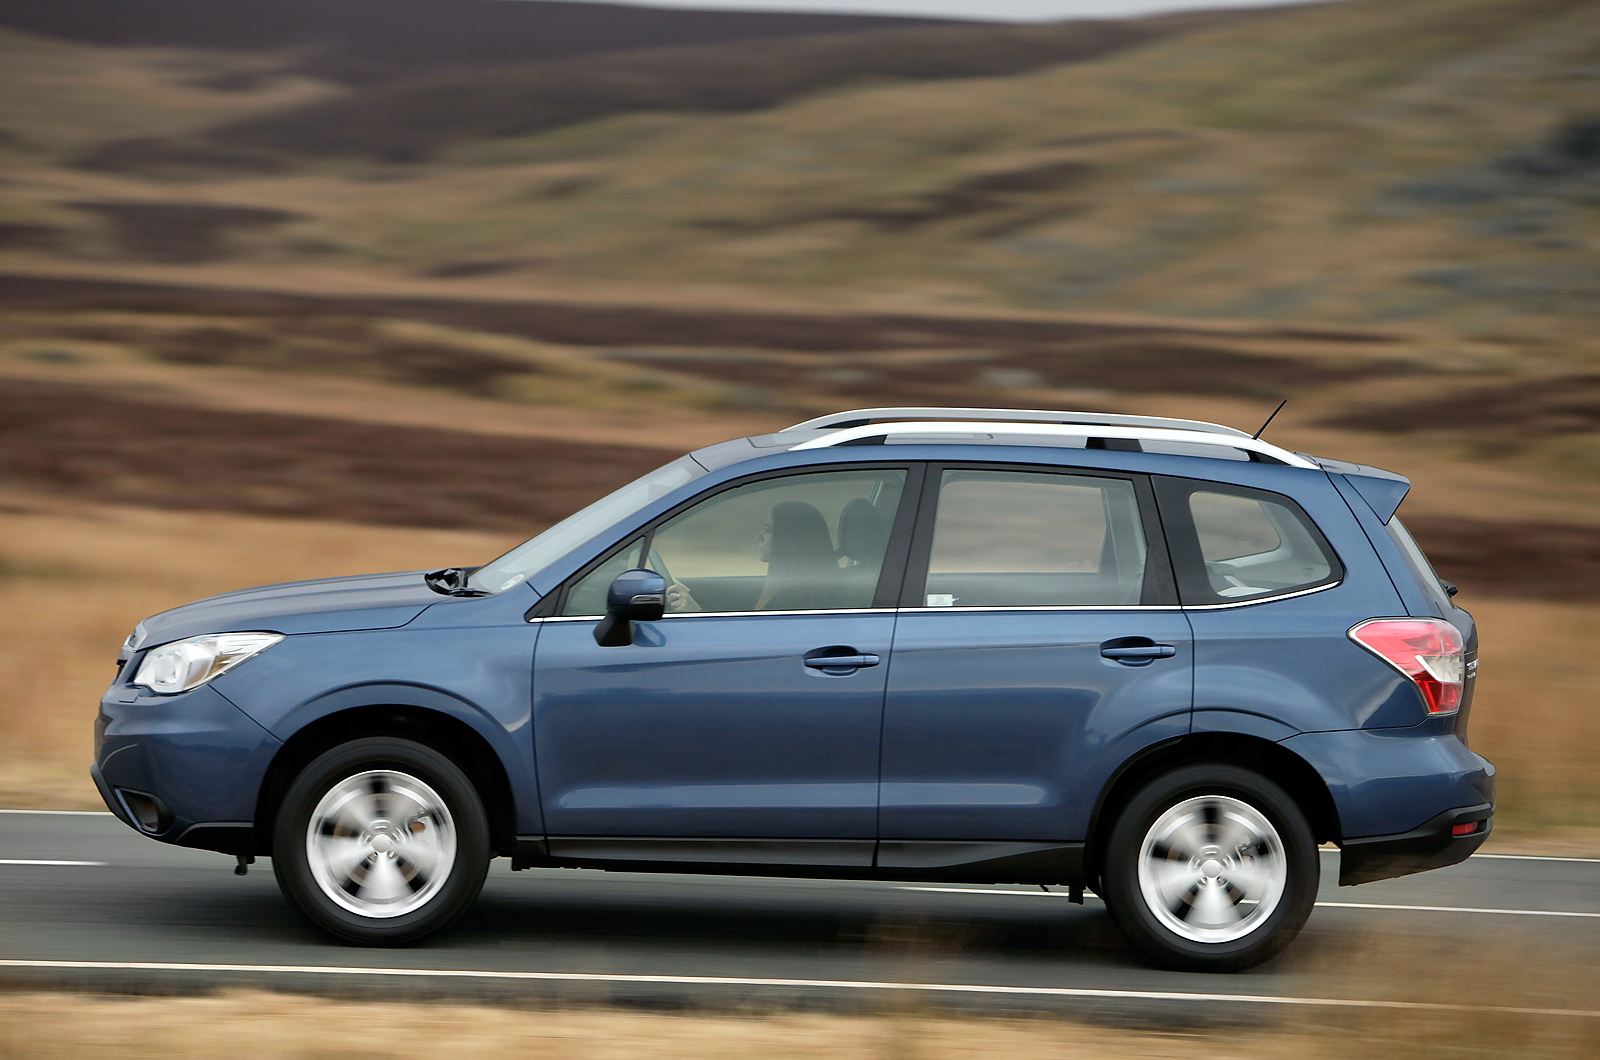 2013 subaru forester 2 0d xc first drive review review autocar. Black Bedroom Furniture Sets. Home Design Ideas